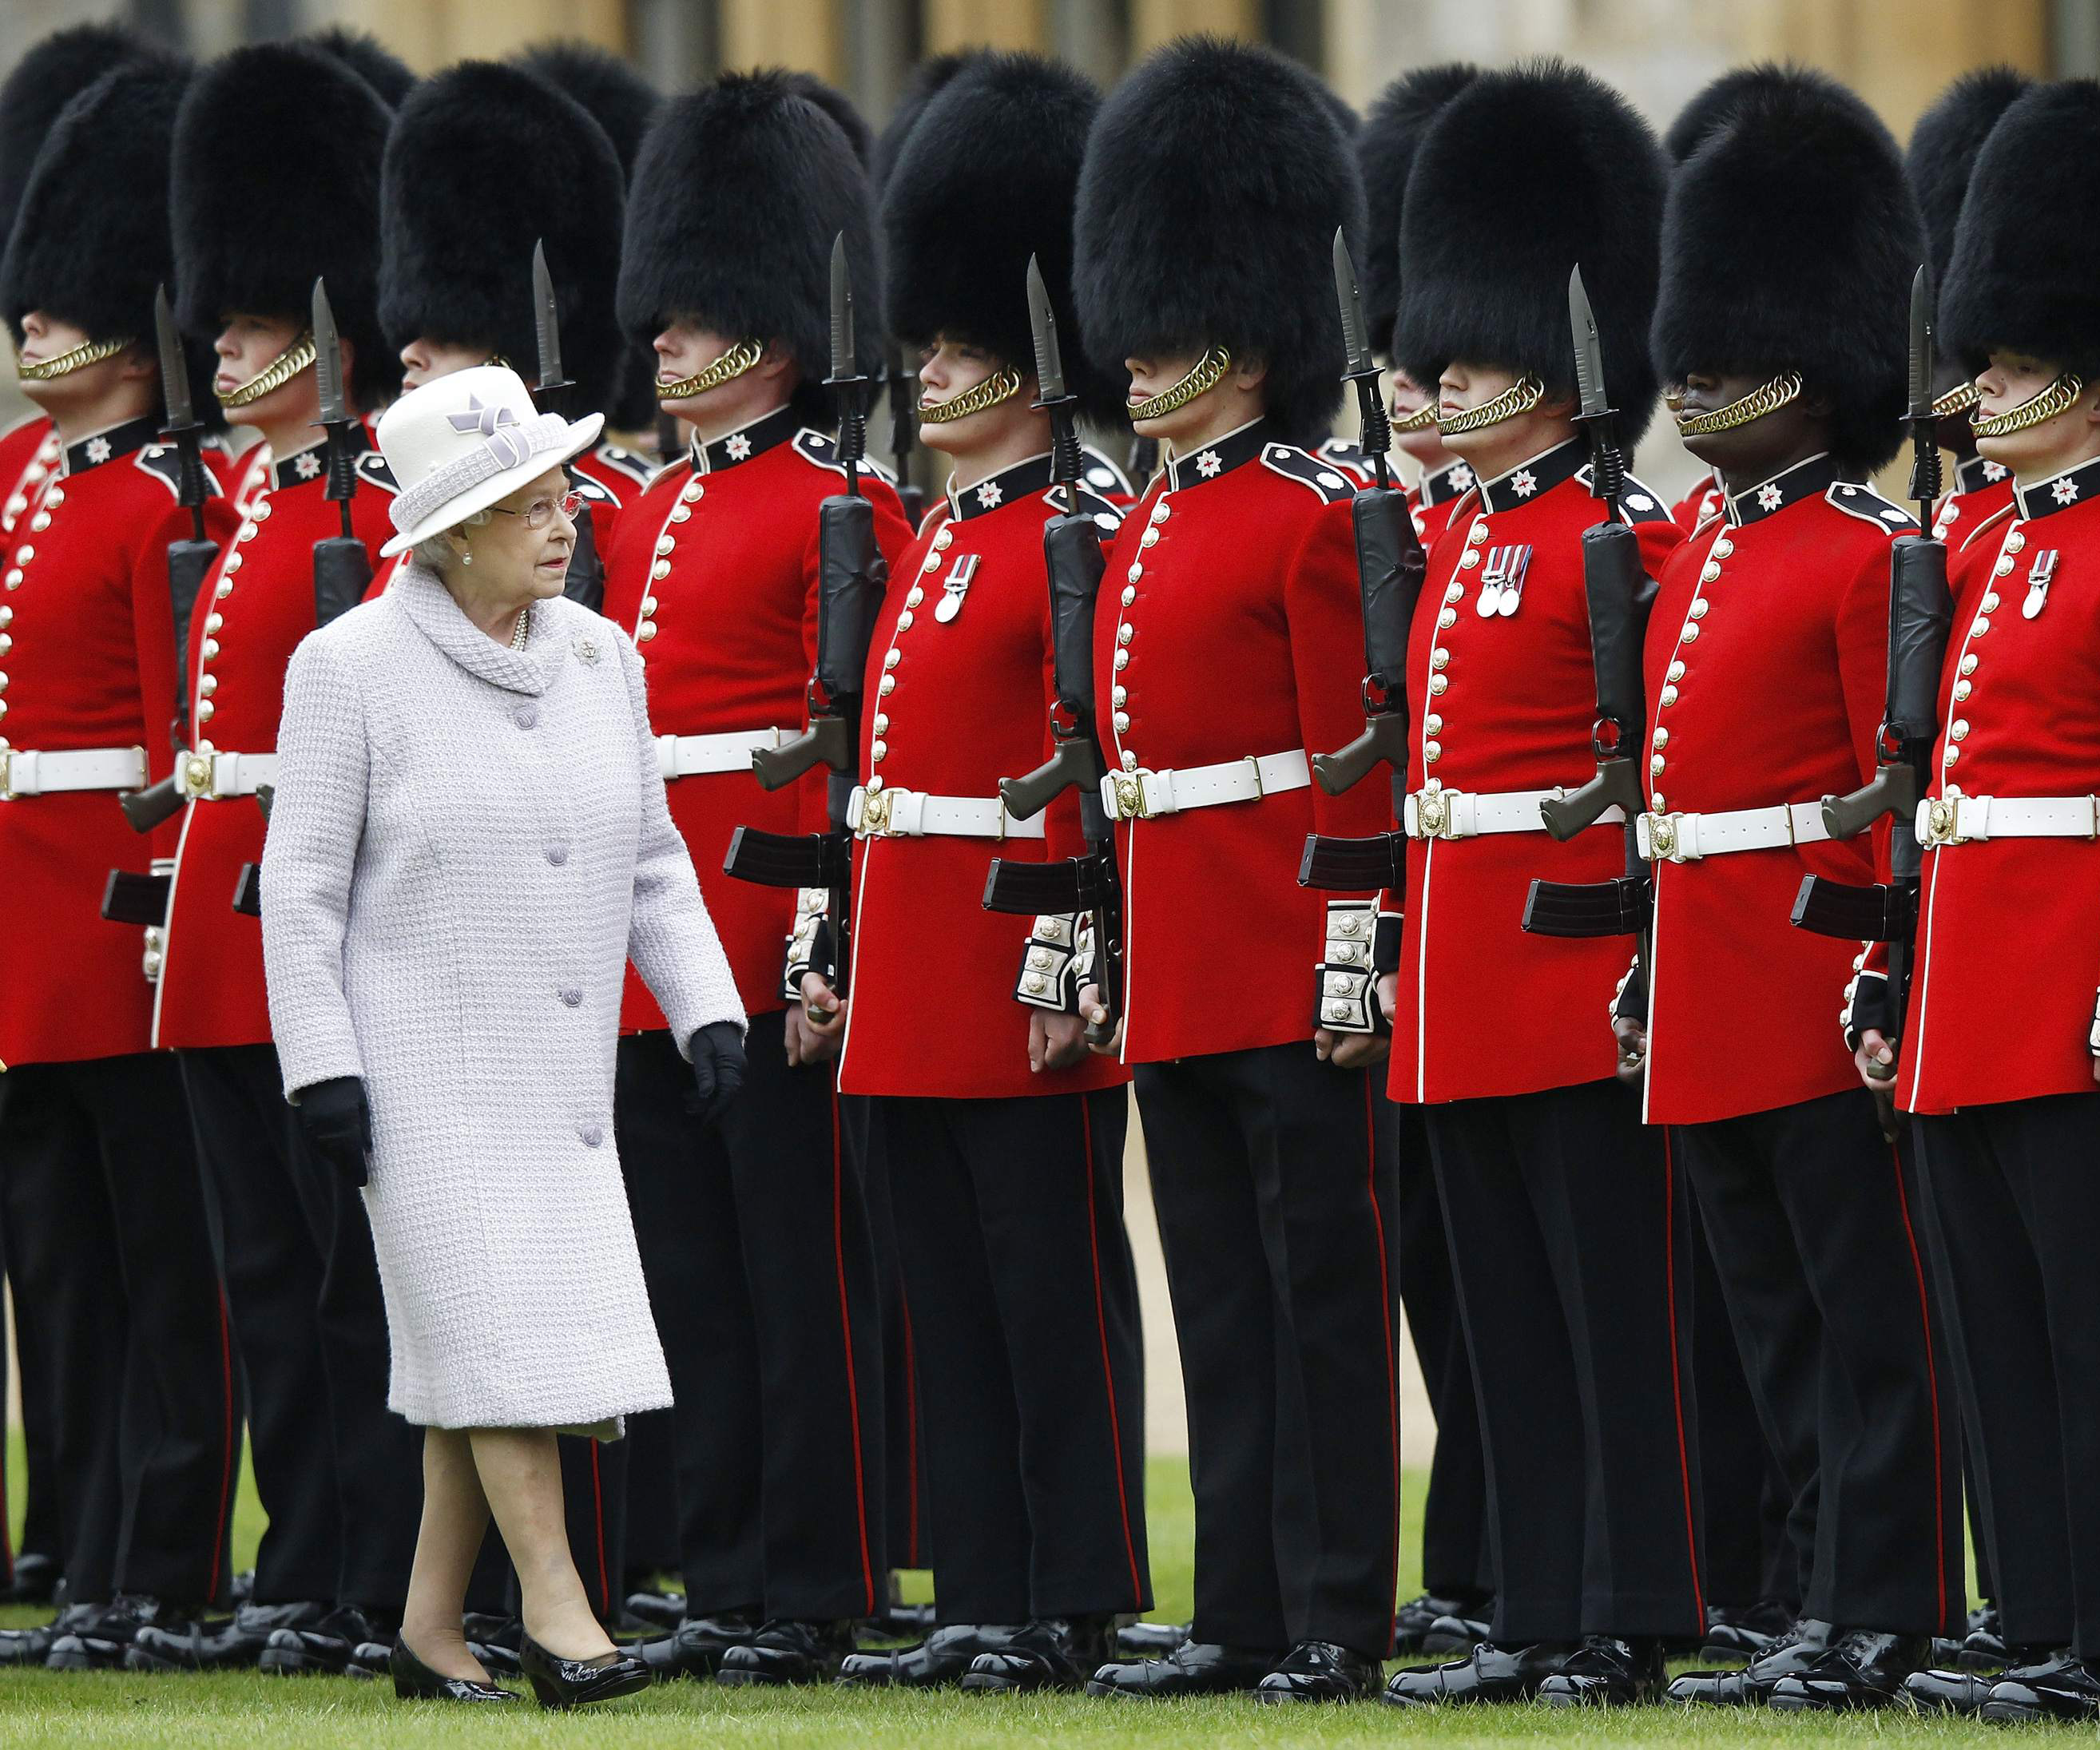 queen-and-guards-MAIN.jpg